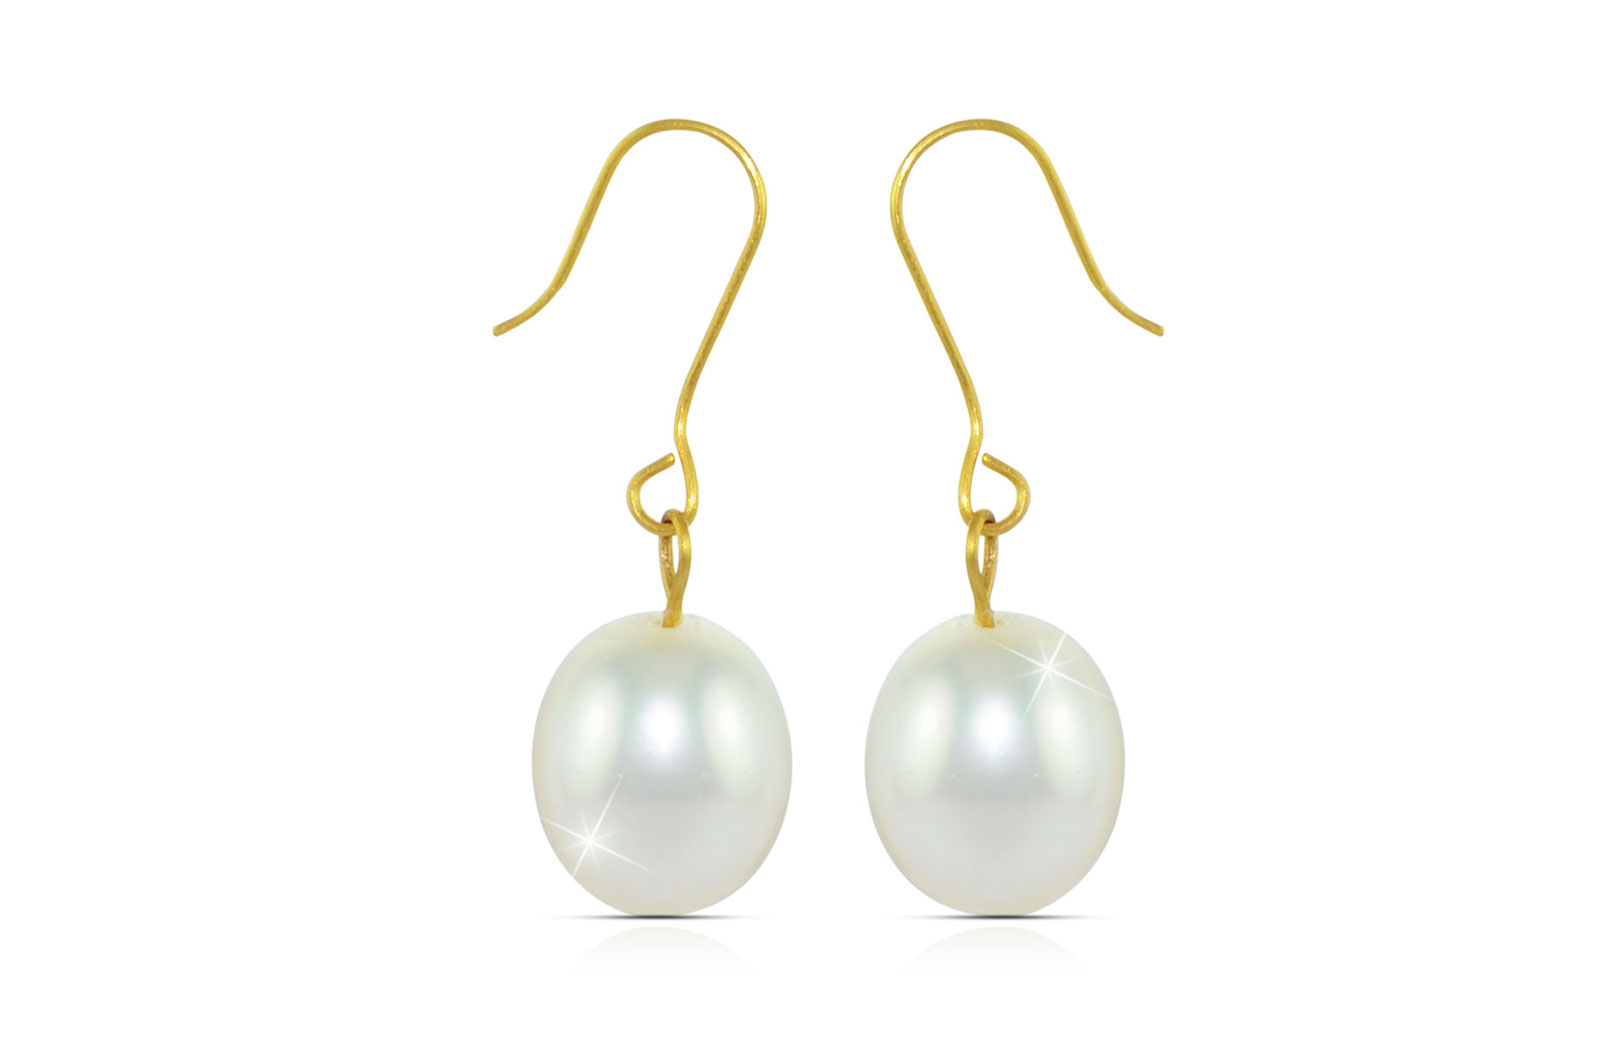 Vera Perla 10K Gold Genuine Baroque 9mm Pearl Delicate Earrings